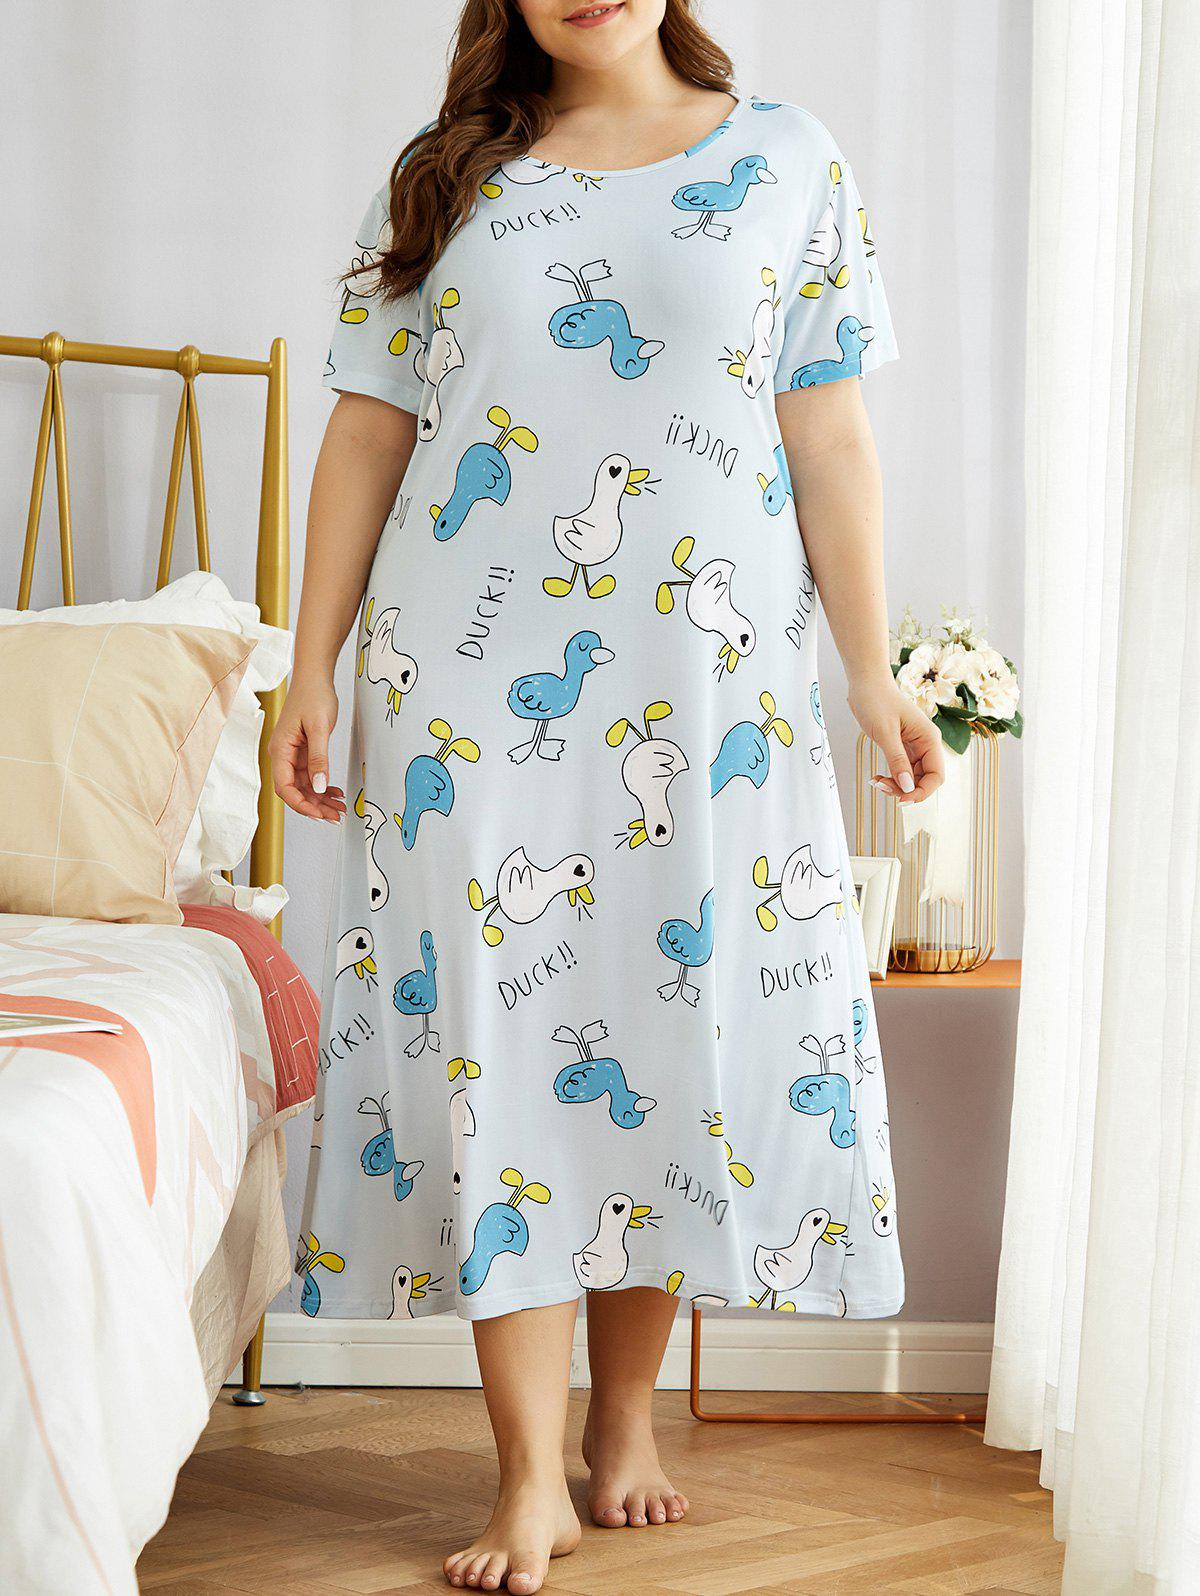 Ducks Print Plus Size Night Dress - LIGHT BLUE 3XL